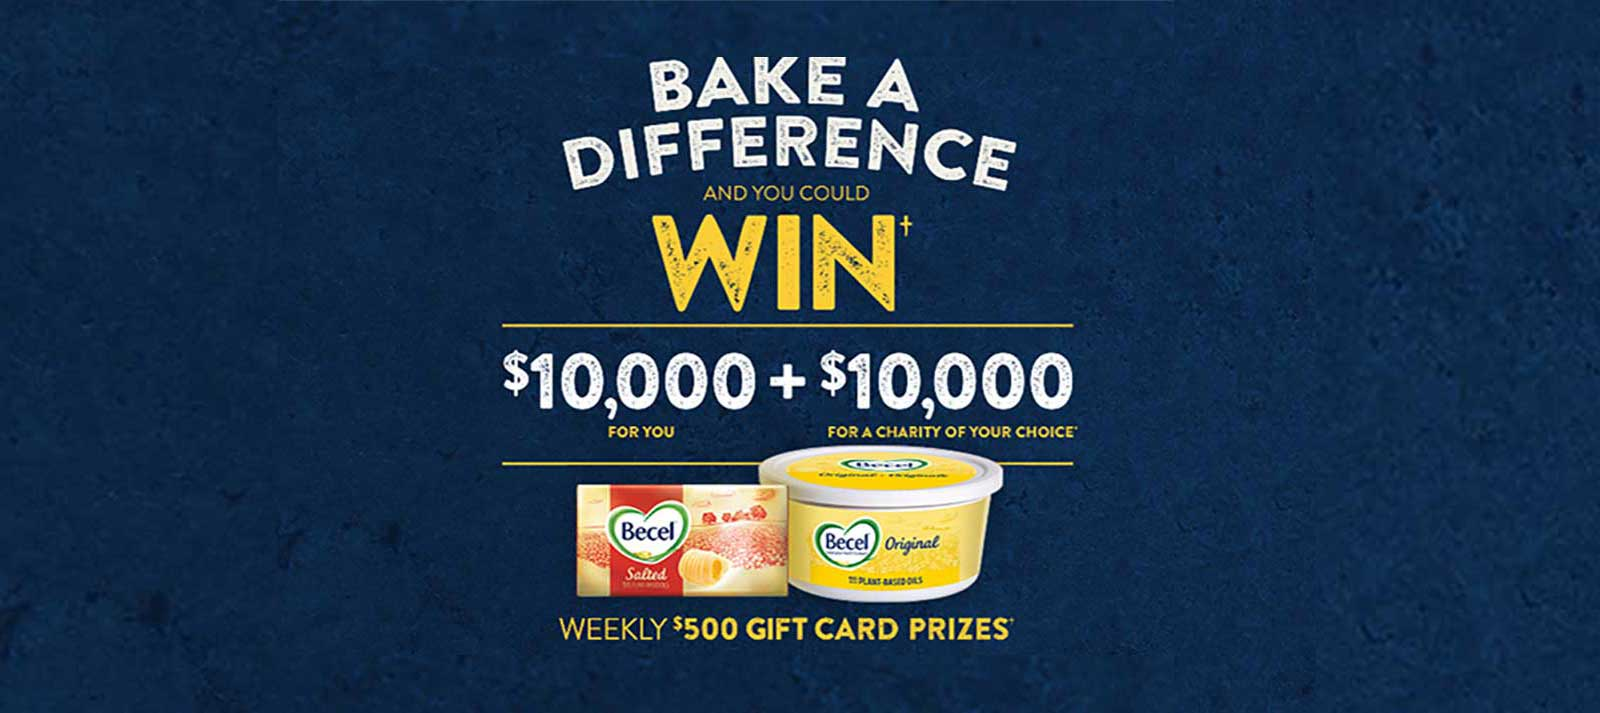 Enter for a chance to win $10,000 for yourself and $10,000 for your favourite charity with the Becel 'Bake a Difference' Contest